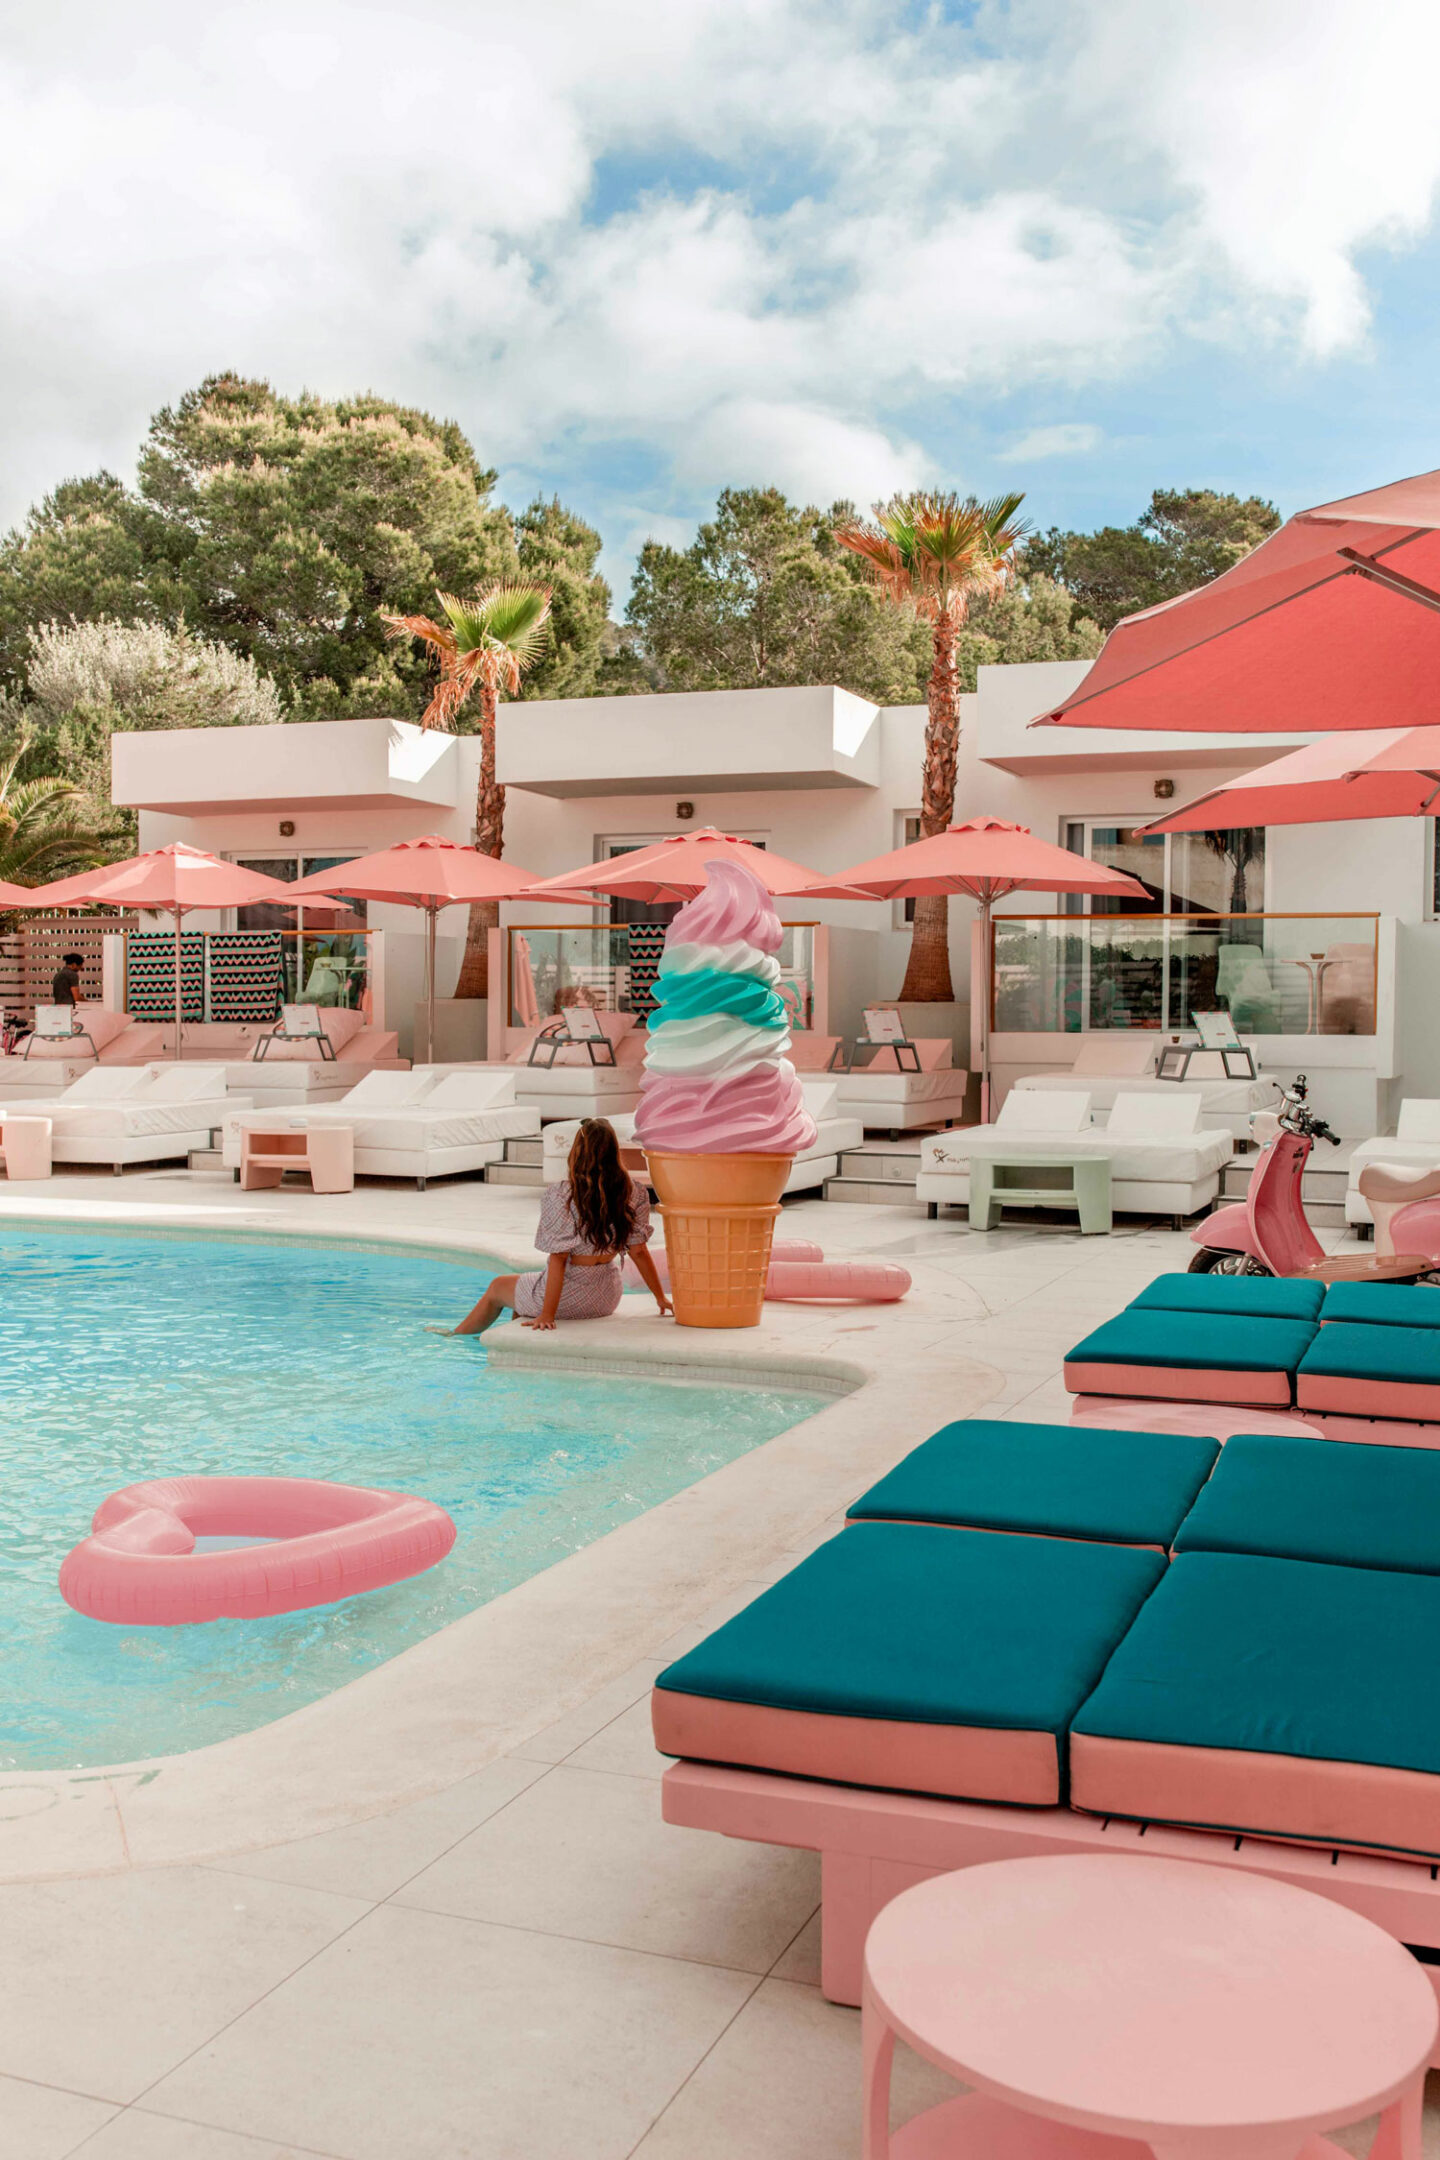 Top-things-to-do-in-Ibiza-Bucket-list--Instagram-Story-Template--kelseyinlondon-Kelsey-Heinrichs--What-to-do-in-Ibiza--Where-to-go-in-Ibiza-top-places-in-Ibiza-wi-ki-woo-hotel